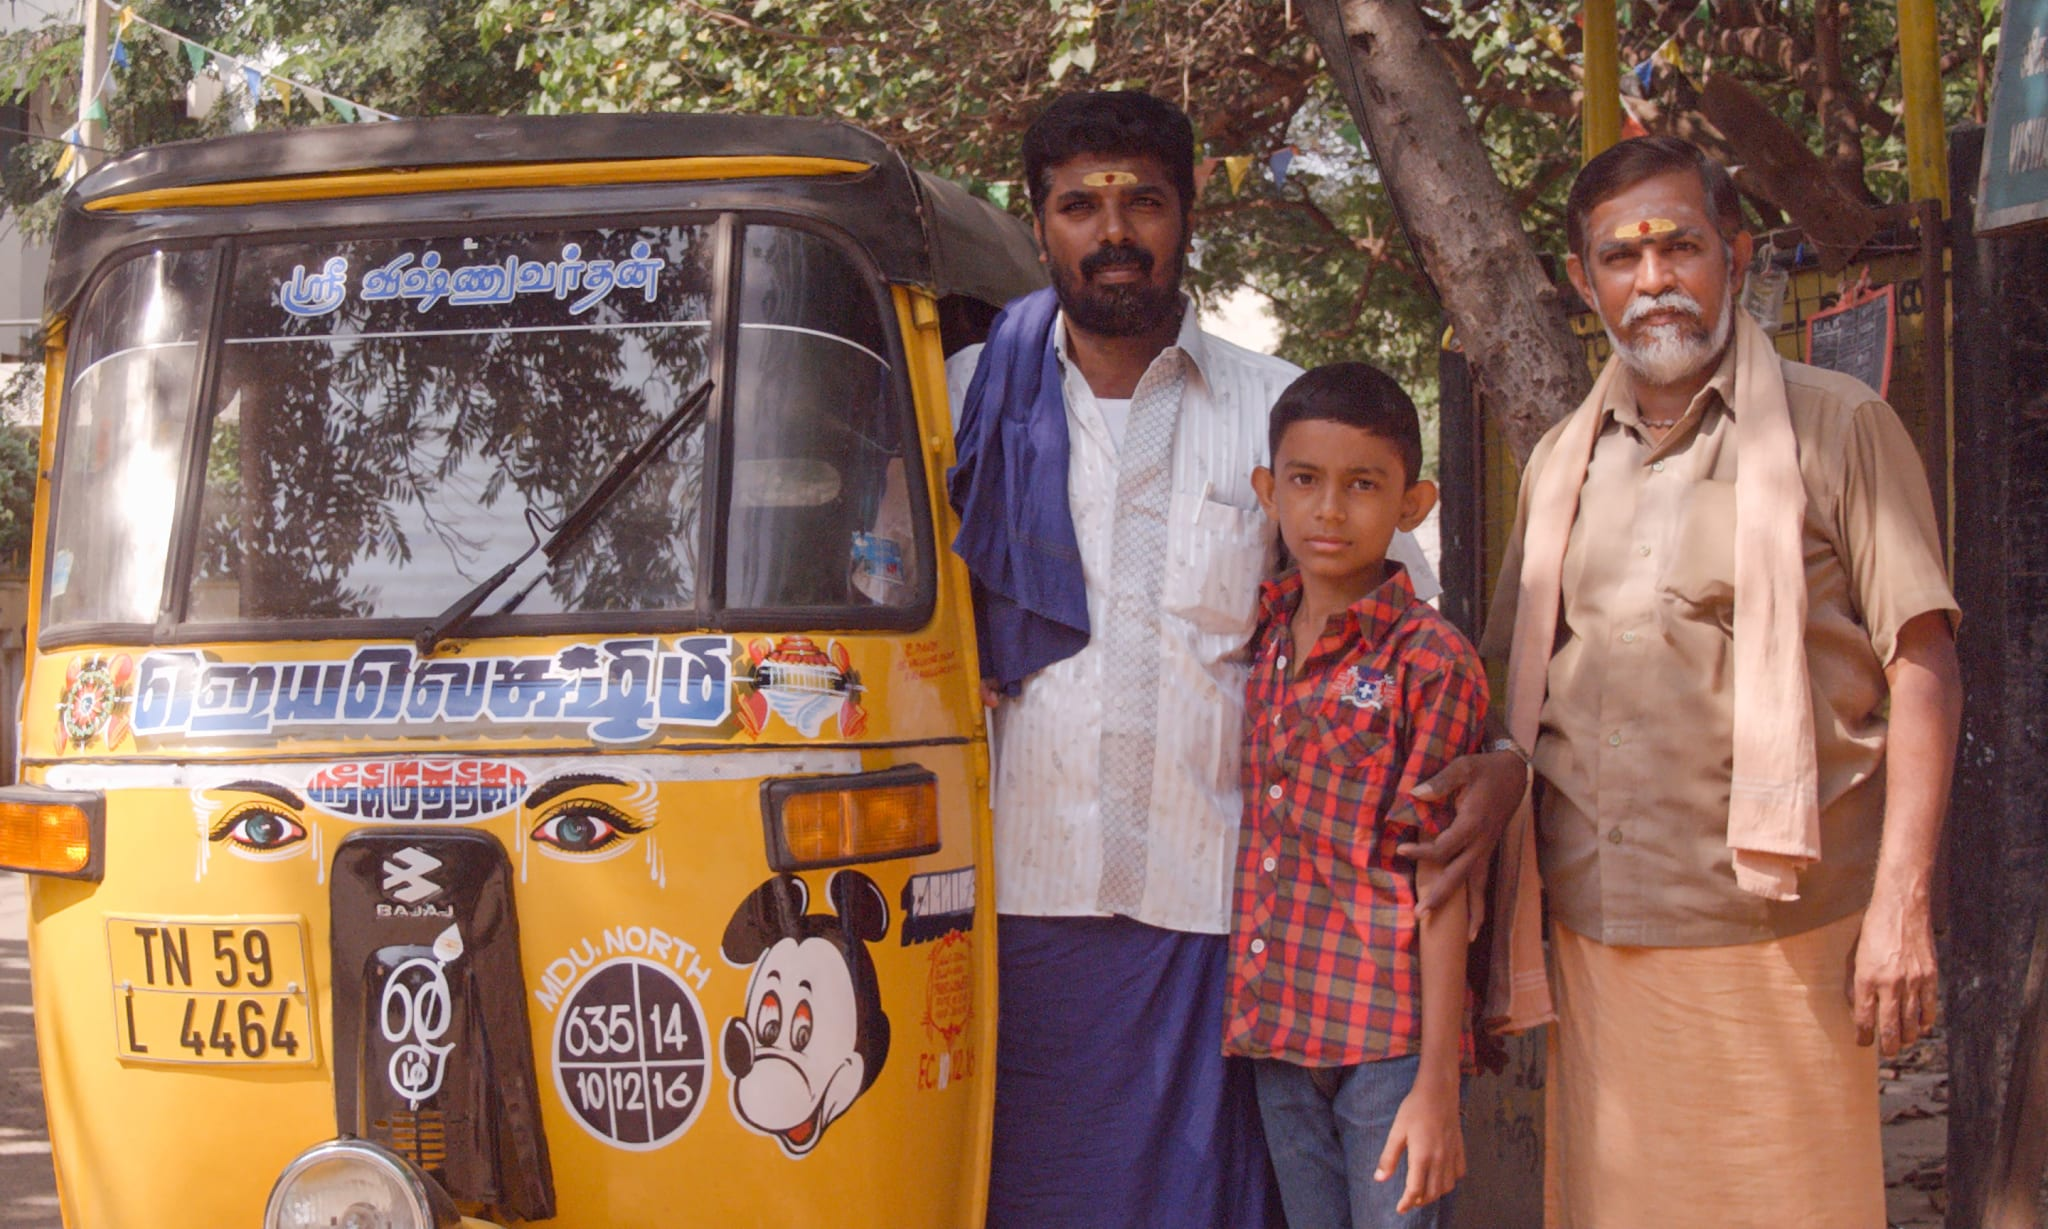 Two men and a boy standing next to a yellow tut-tut with a sticker of Mickey Mouse on it.